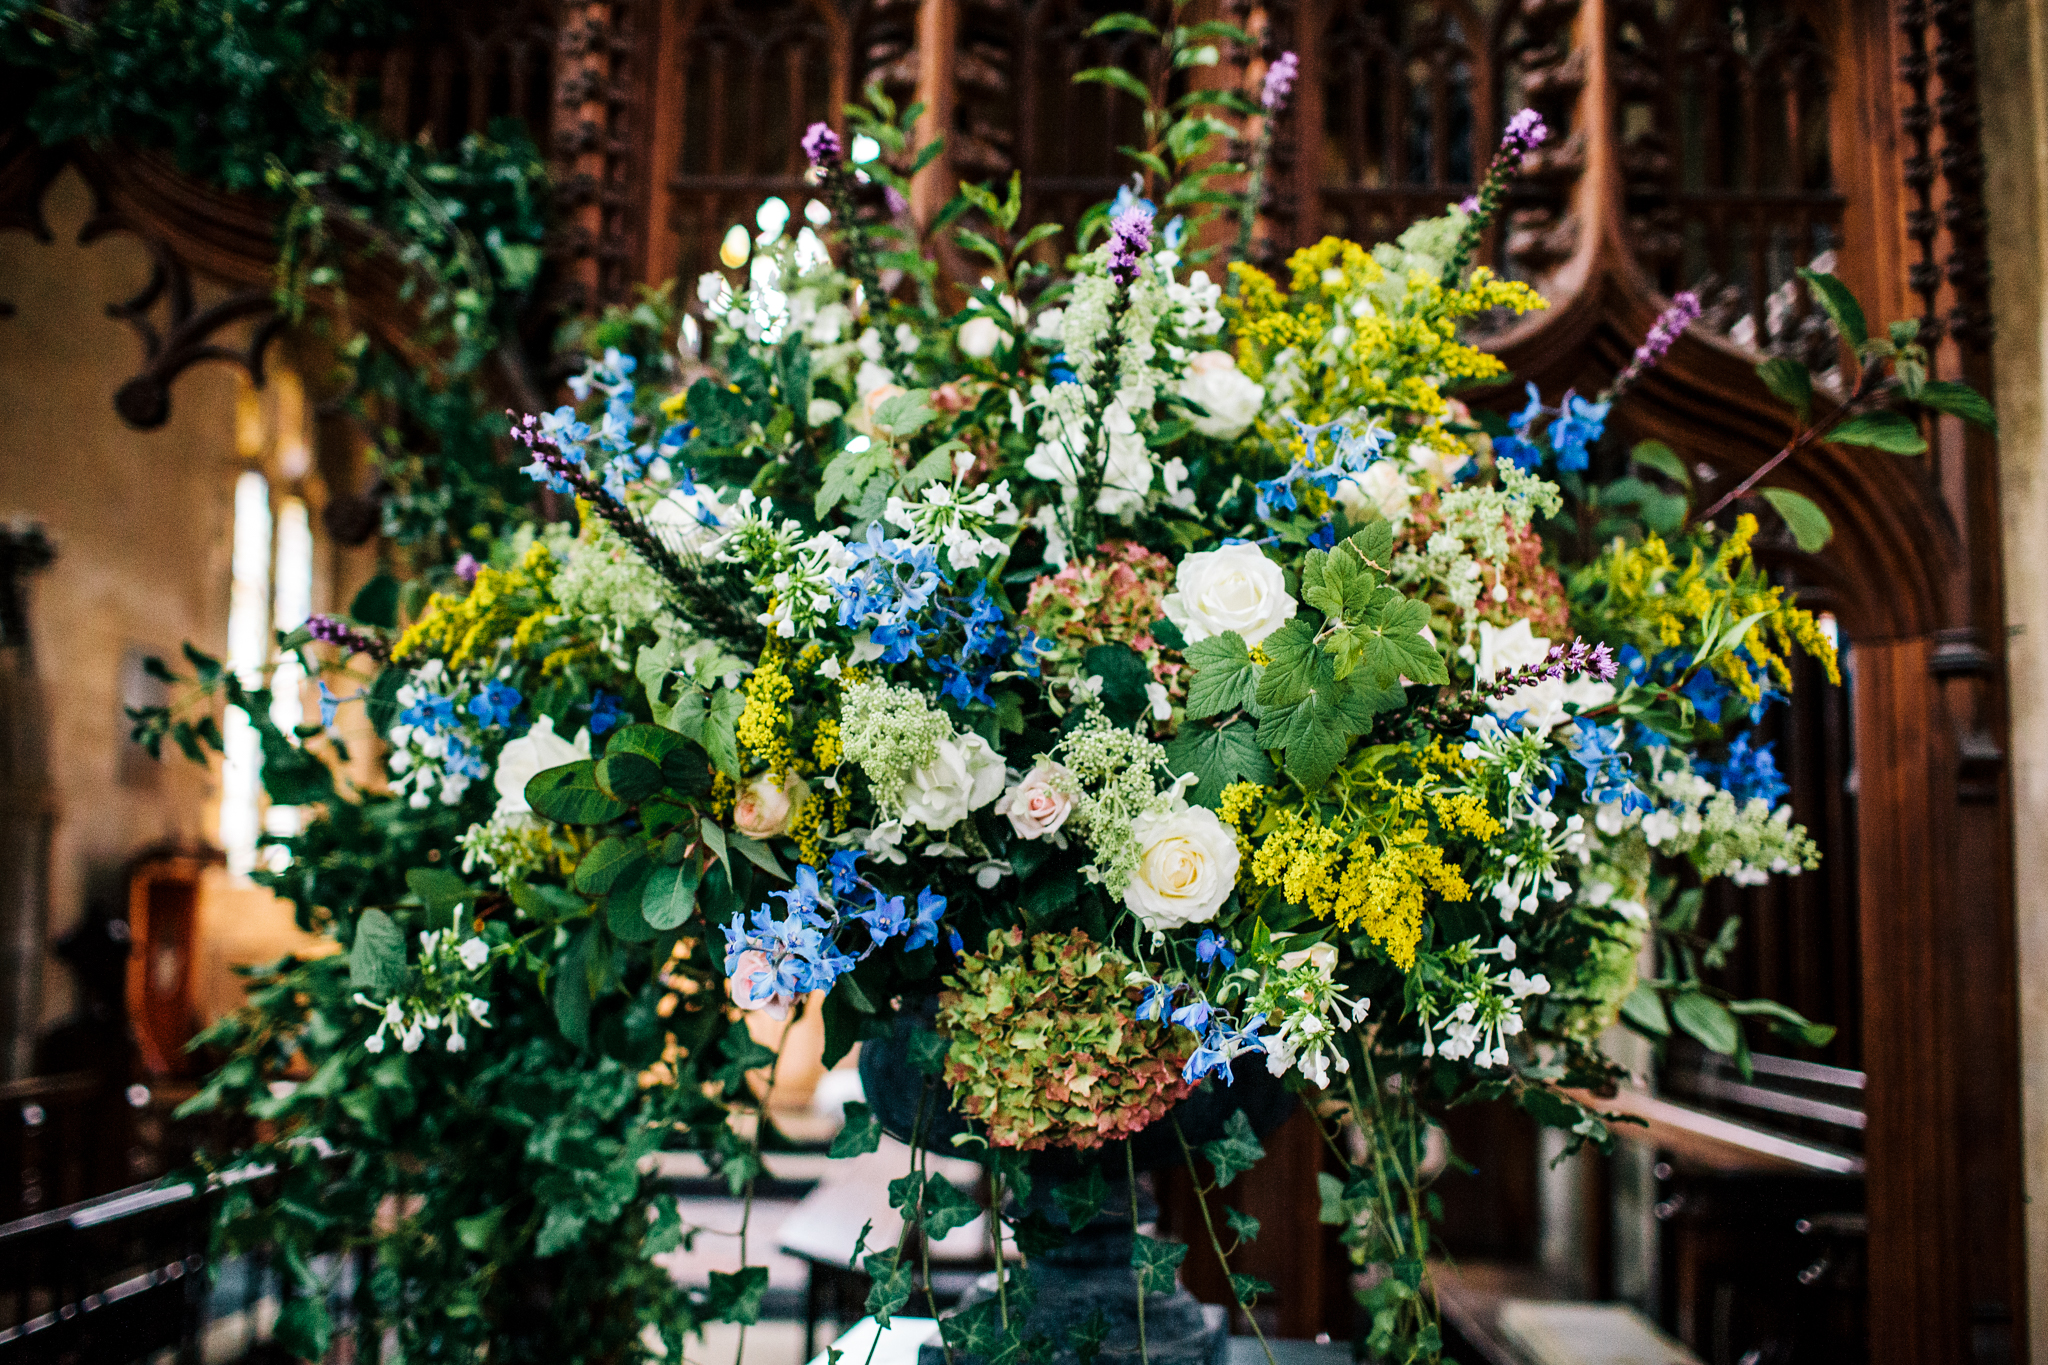 huge floral display inside St.Andrews church in Mells, near frome